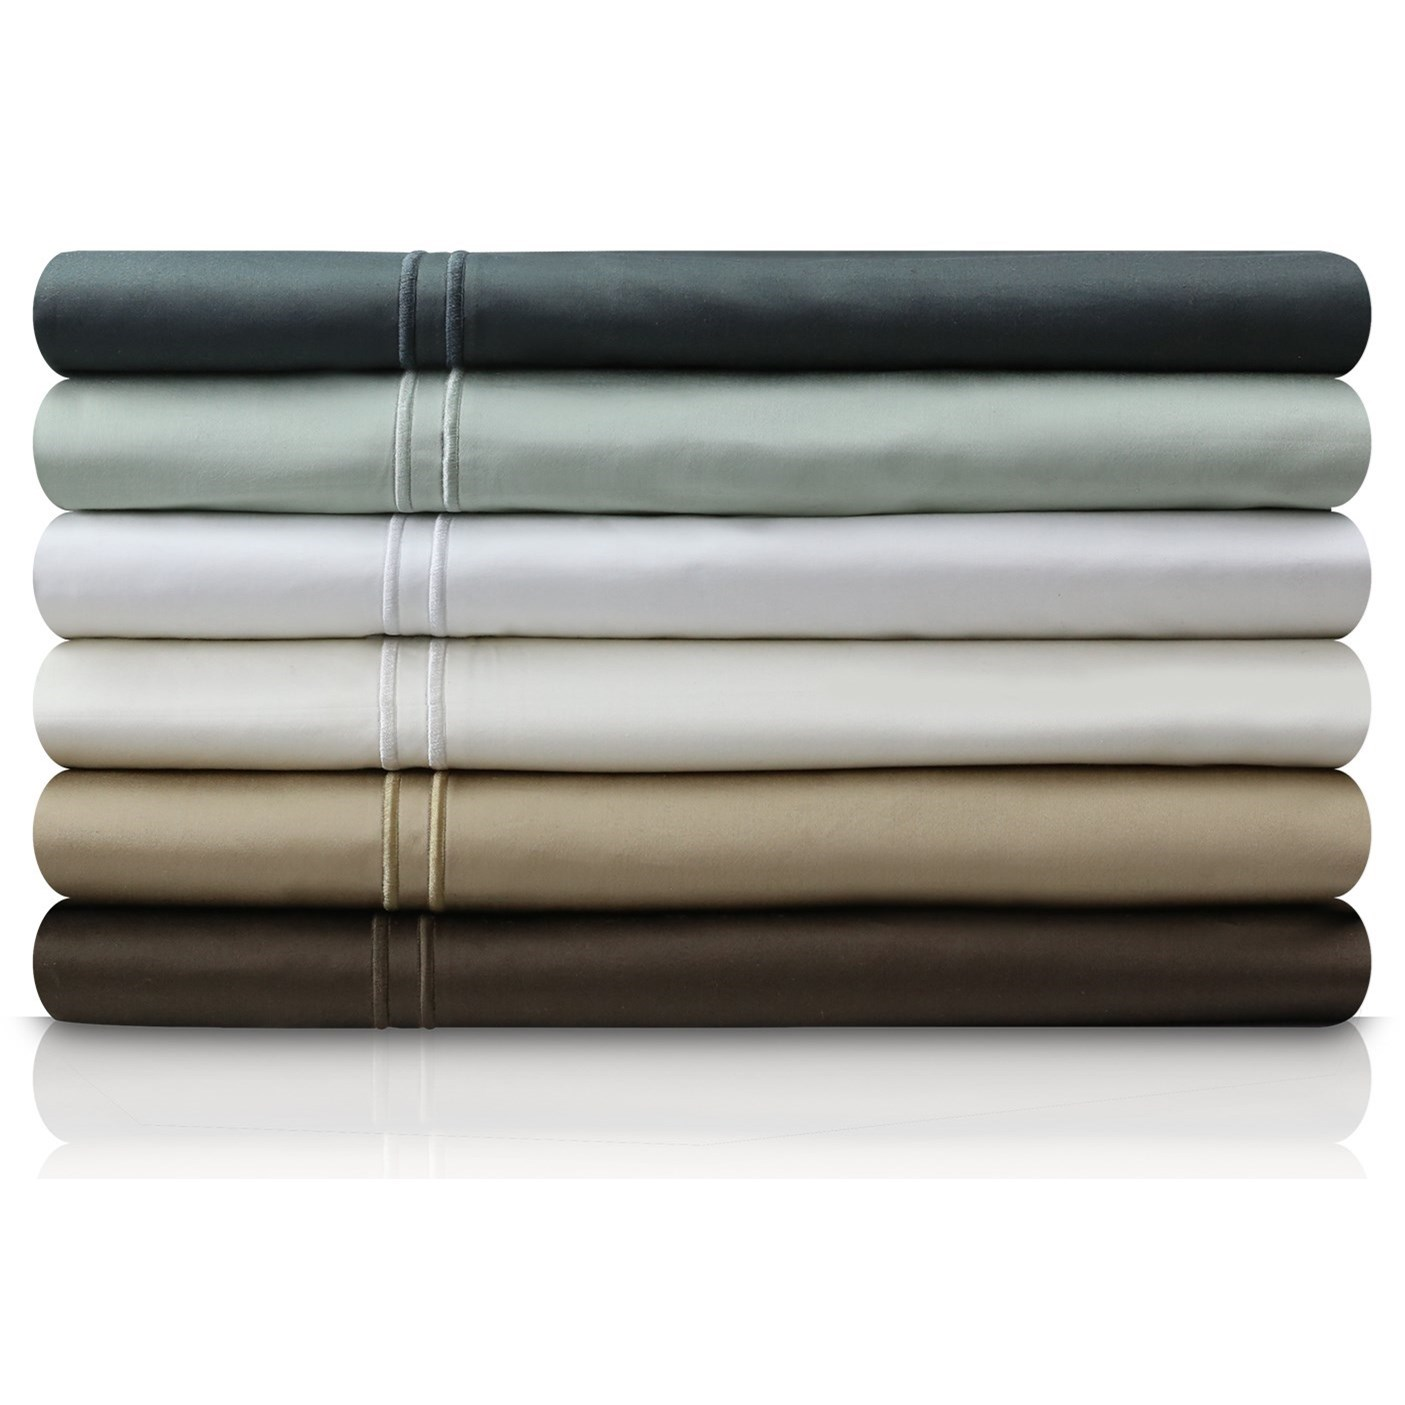 Malouf Egyptian Cotton Standard 400 TC Egyptian Cotton Standard Pil - Item Number: MA04STSLPC